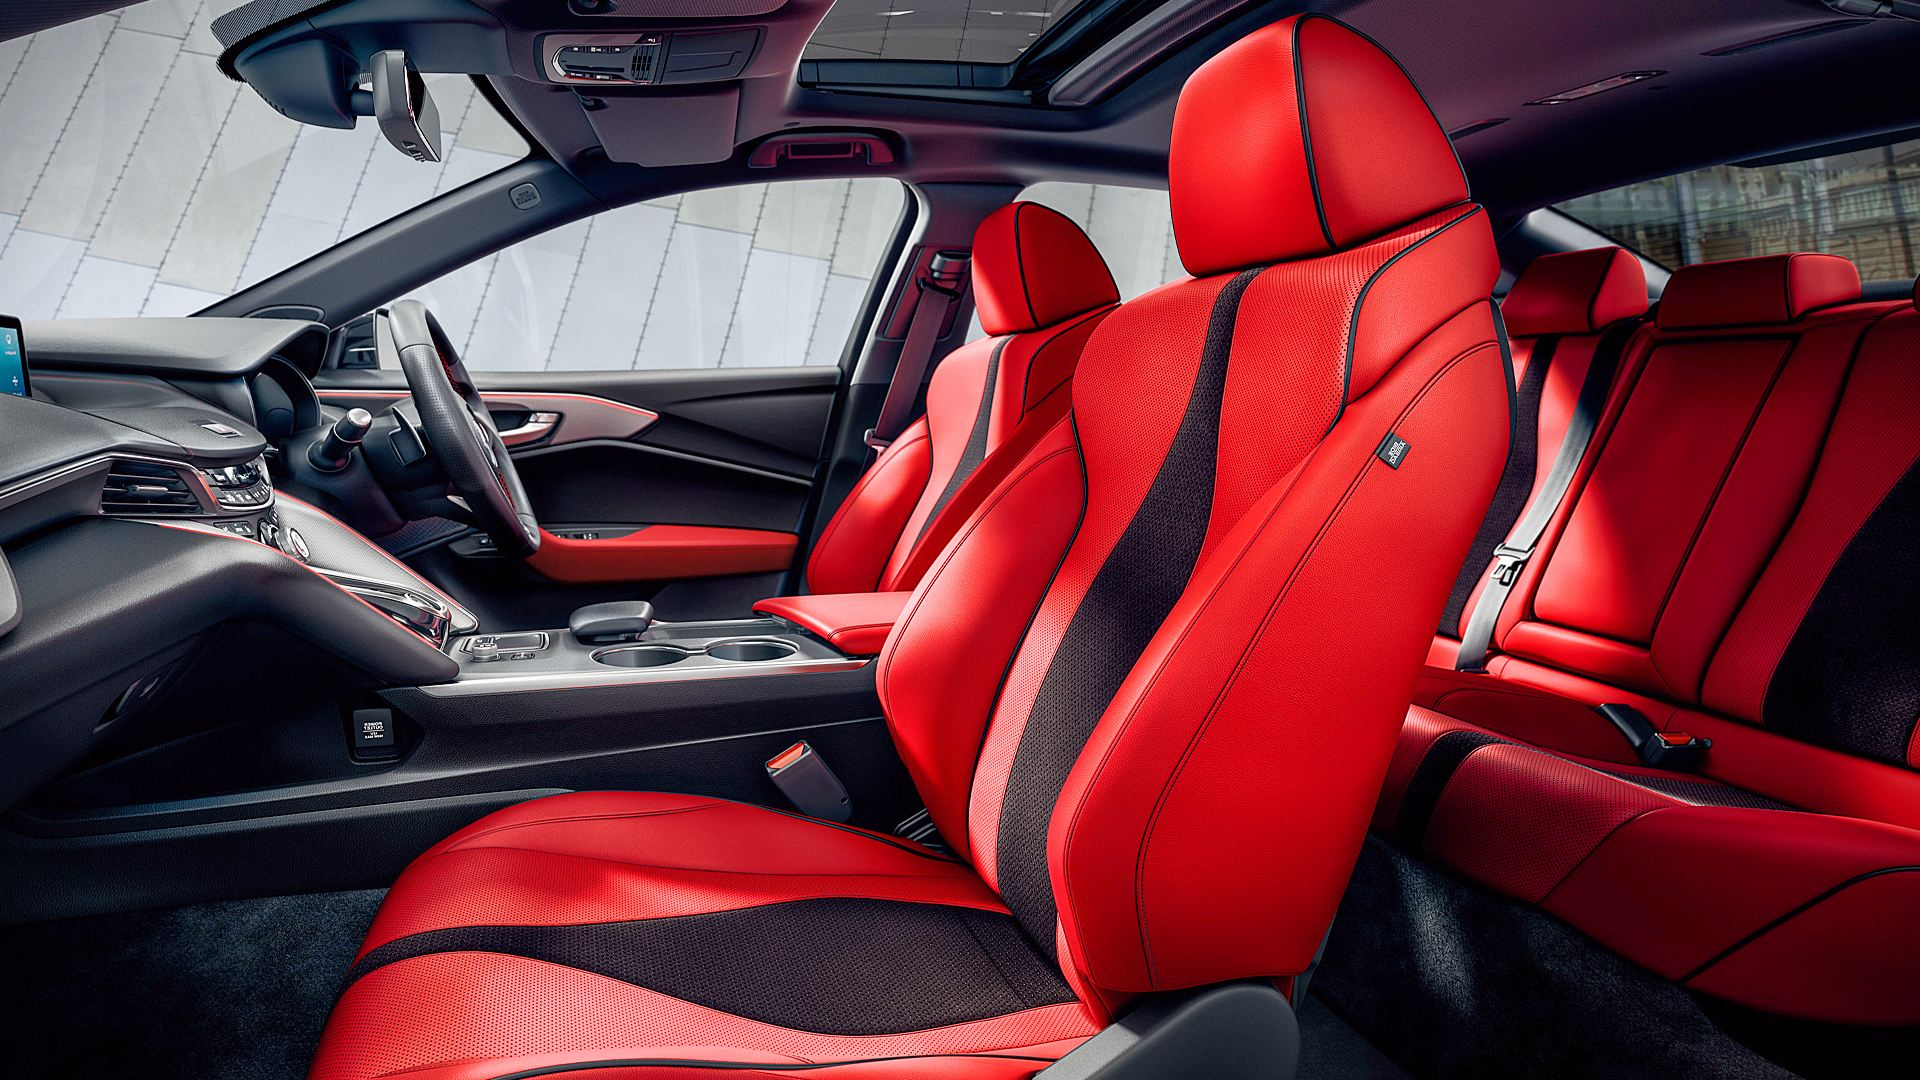 2021 Acura Tlx Type S Wallpapers Wallpaper Cave